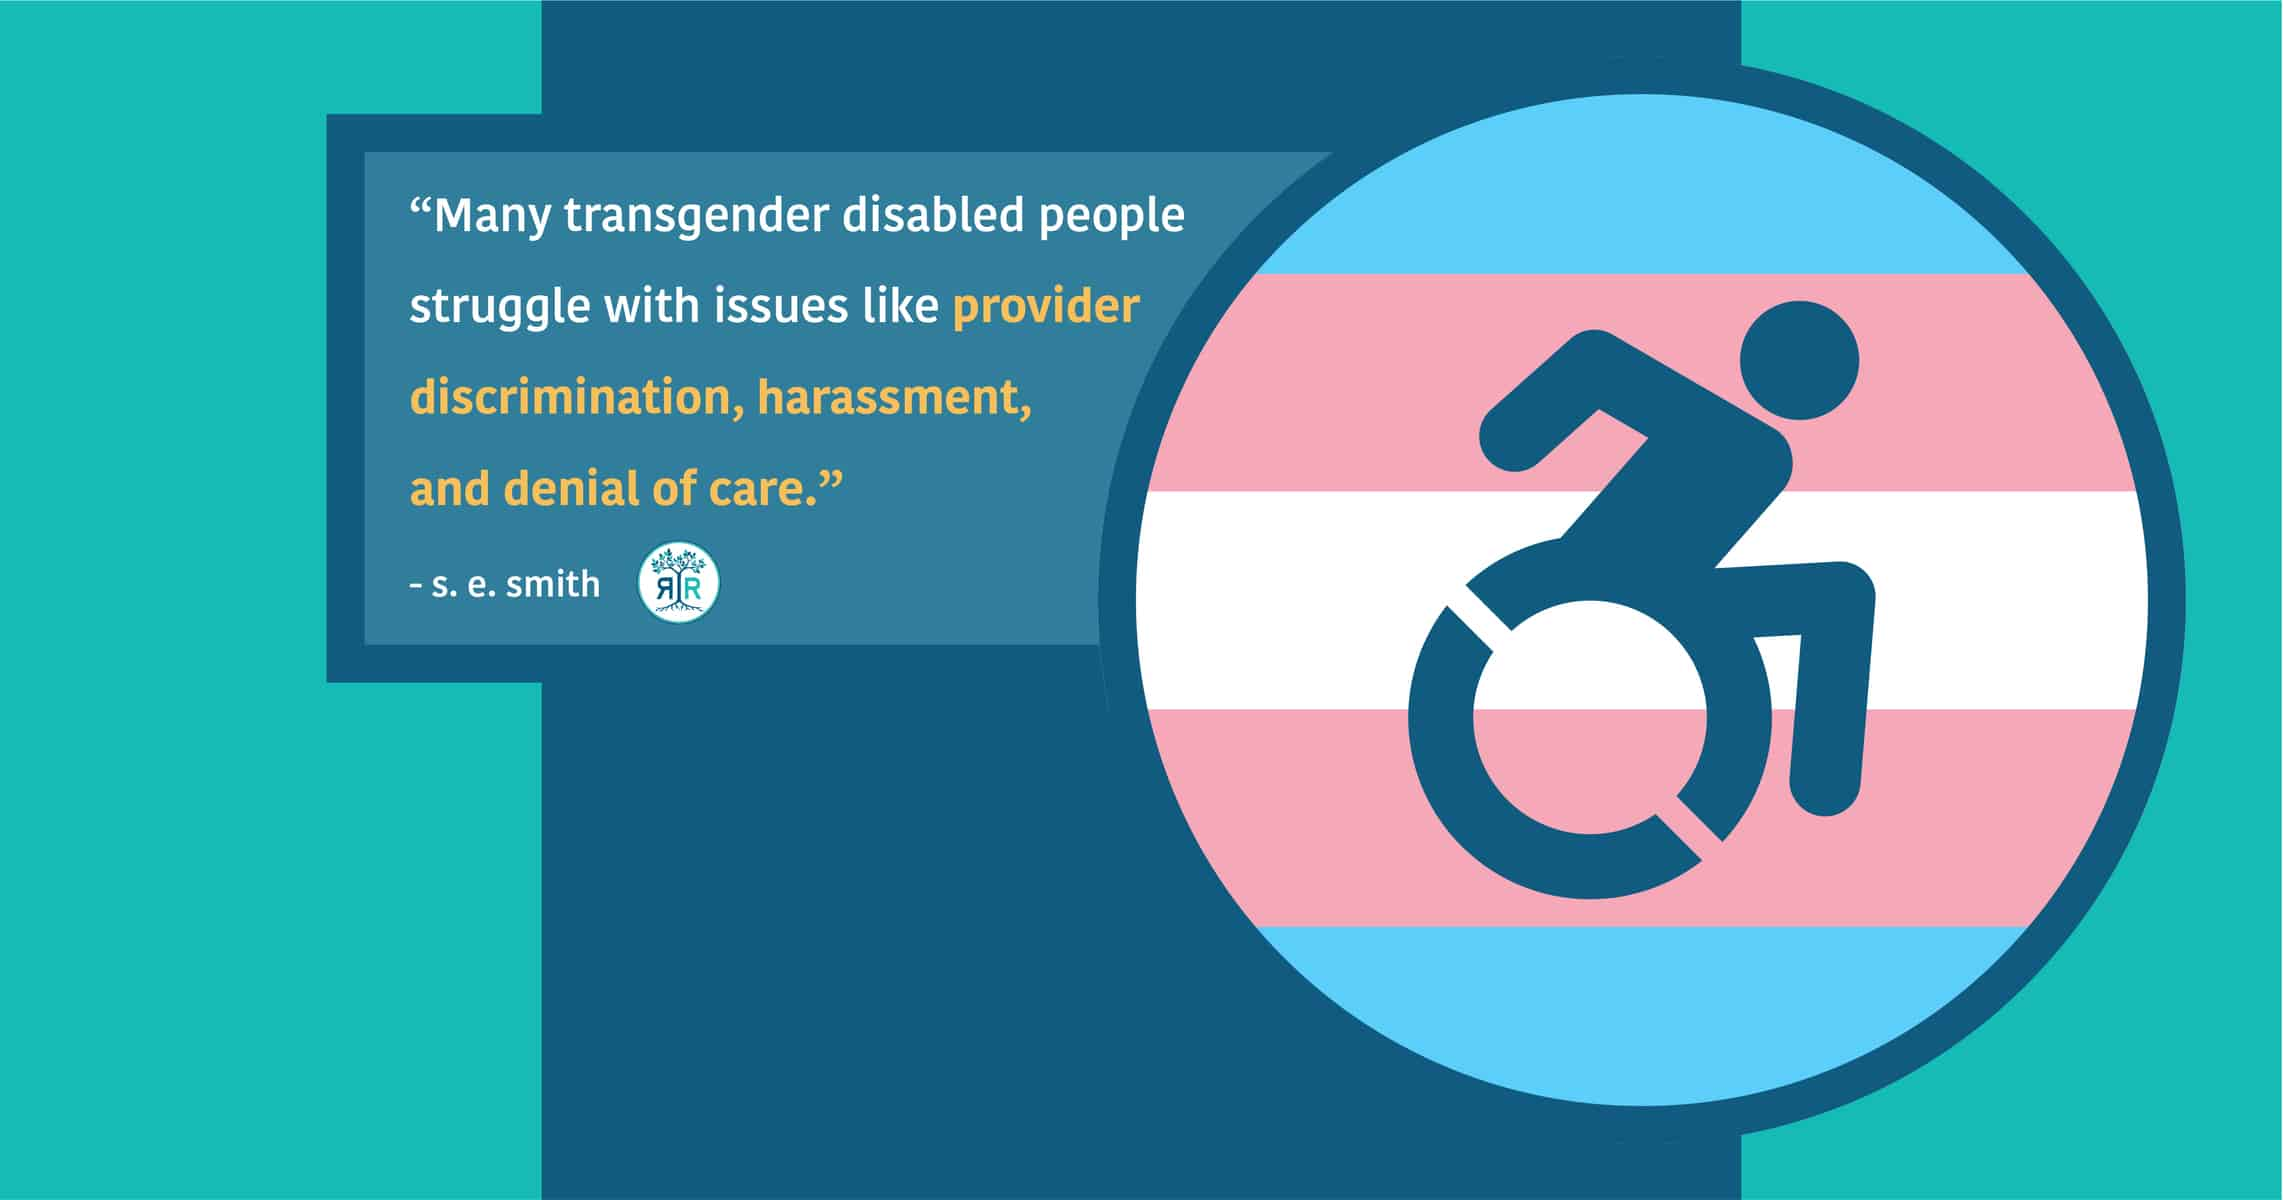 navigating the twists and turns of healthcare as a trans disabled